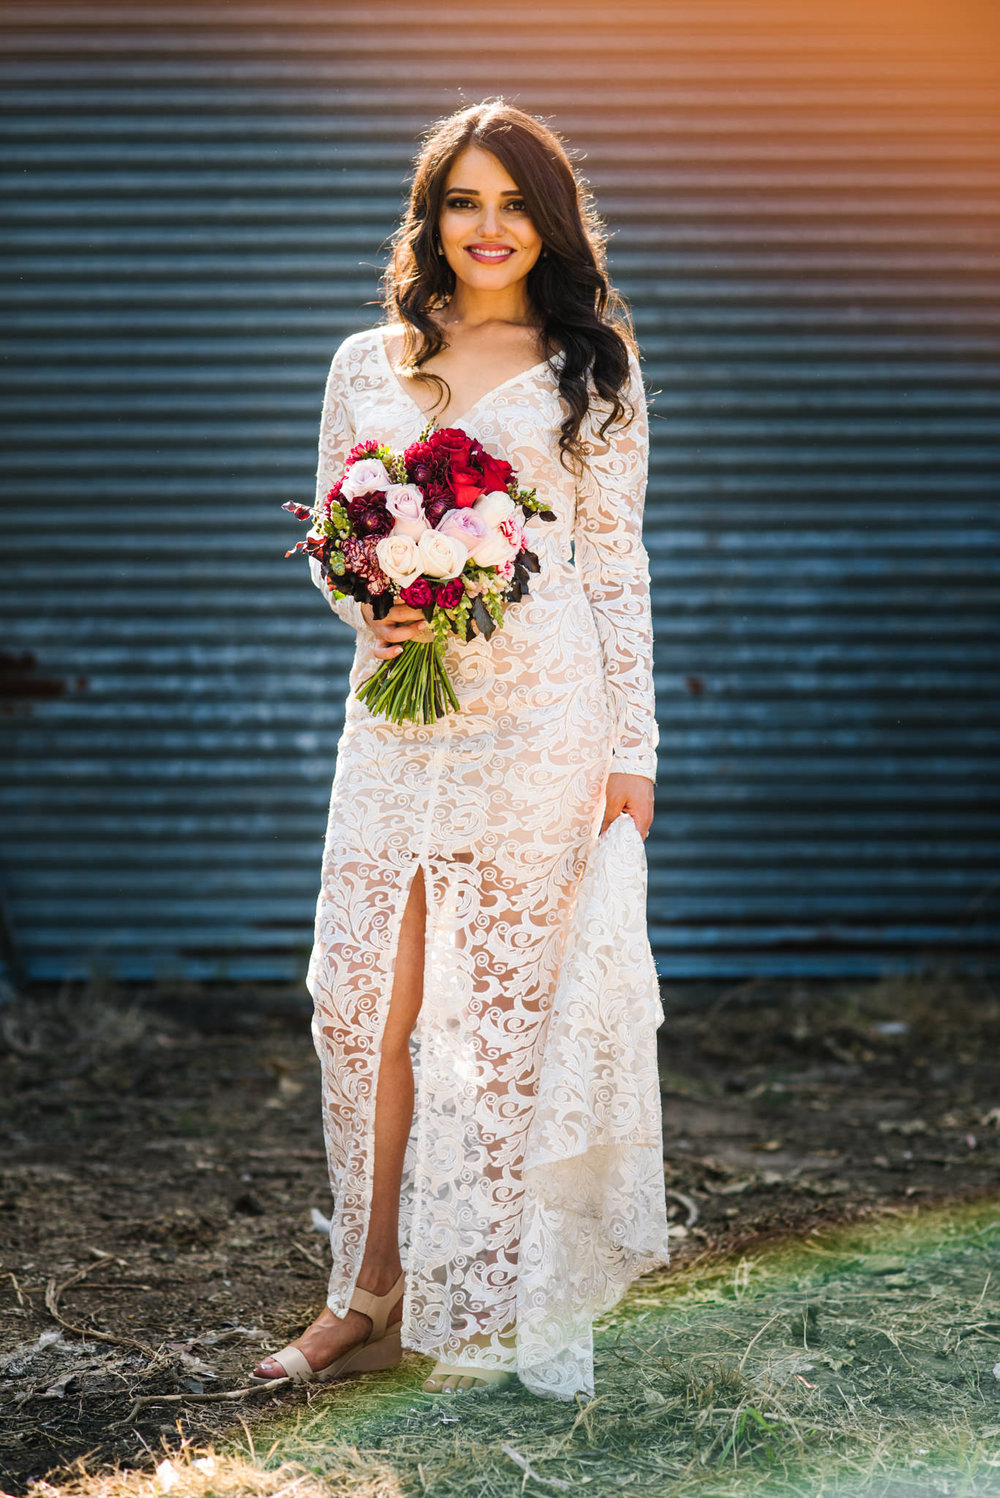 Vintage bridal gown at country wedding.jpg